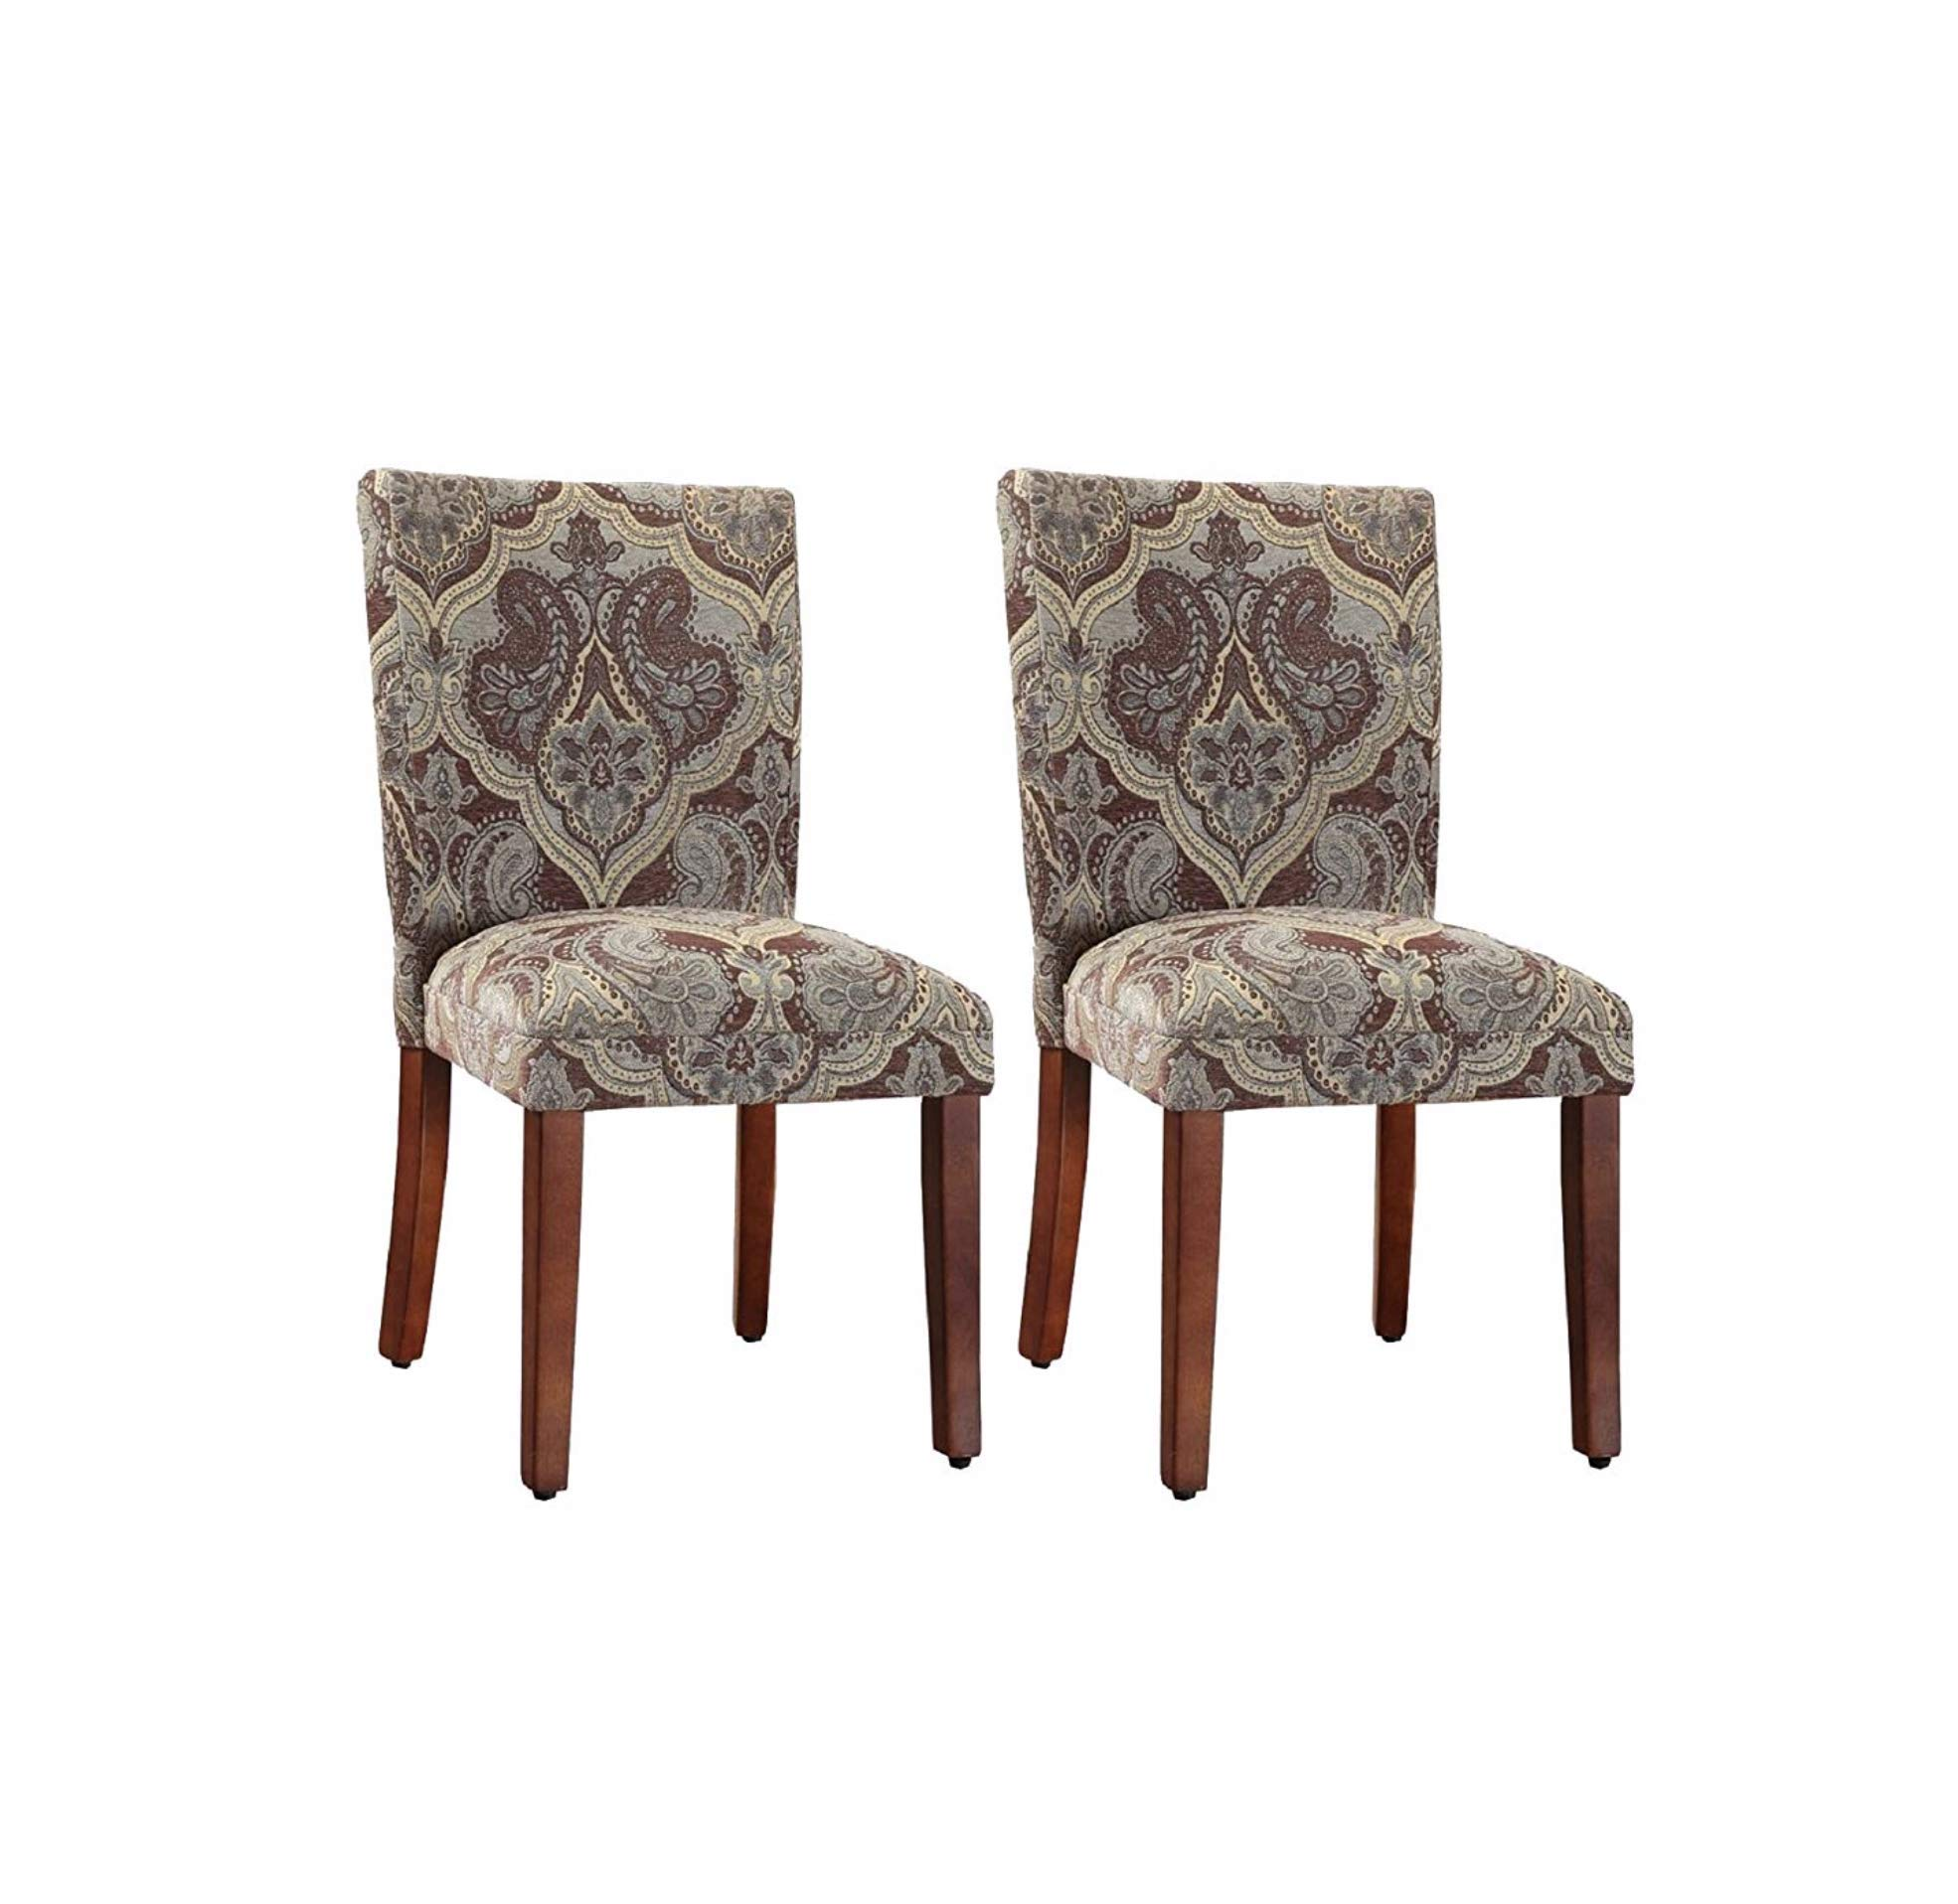 Upholstered Dining Chairs Parson Light Wood Chair Pads